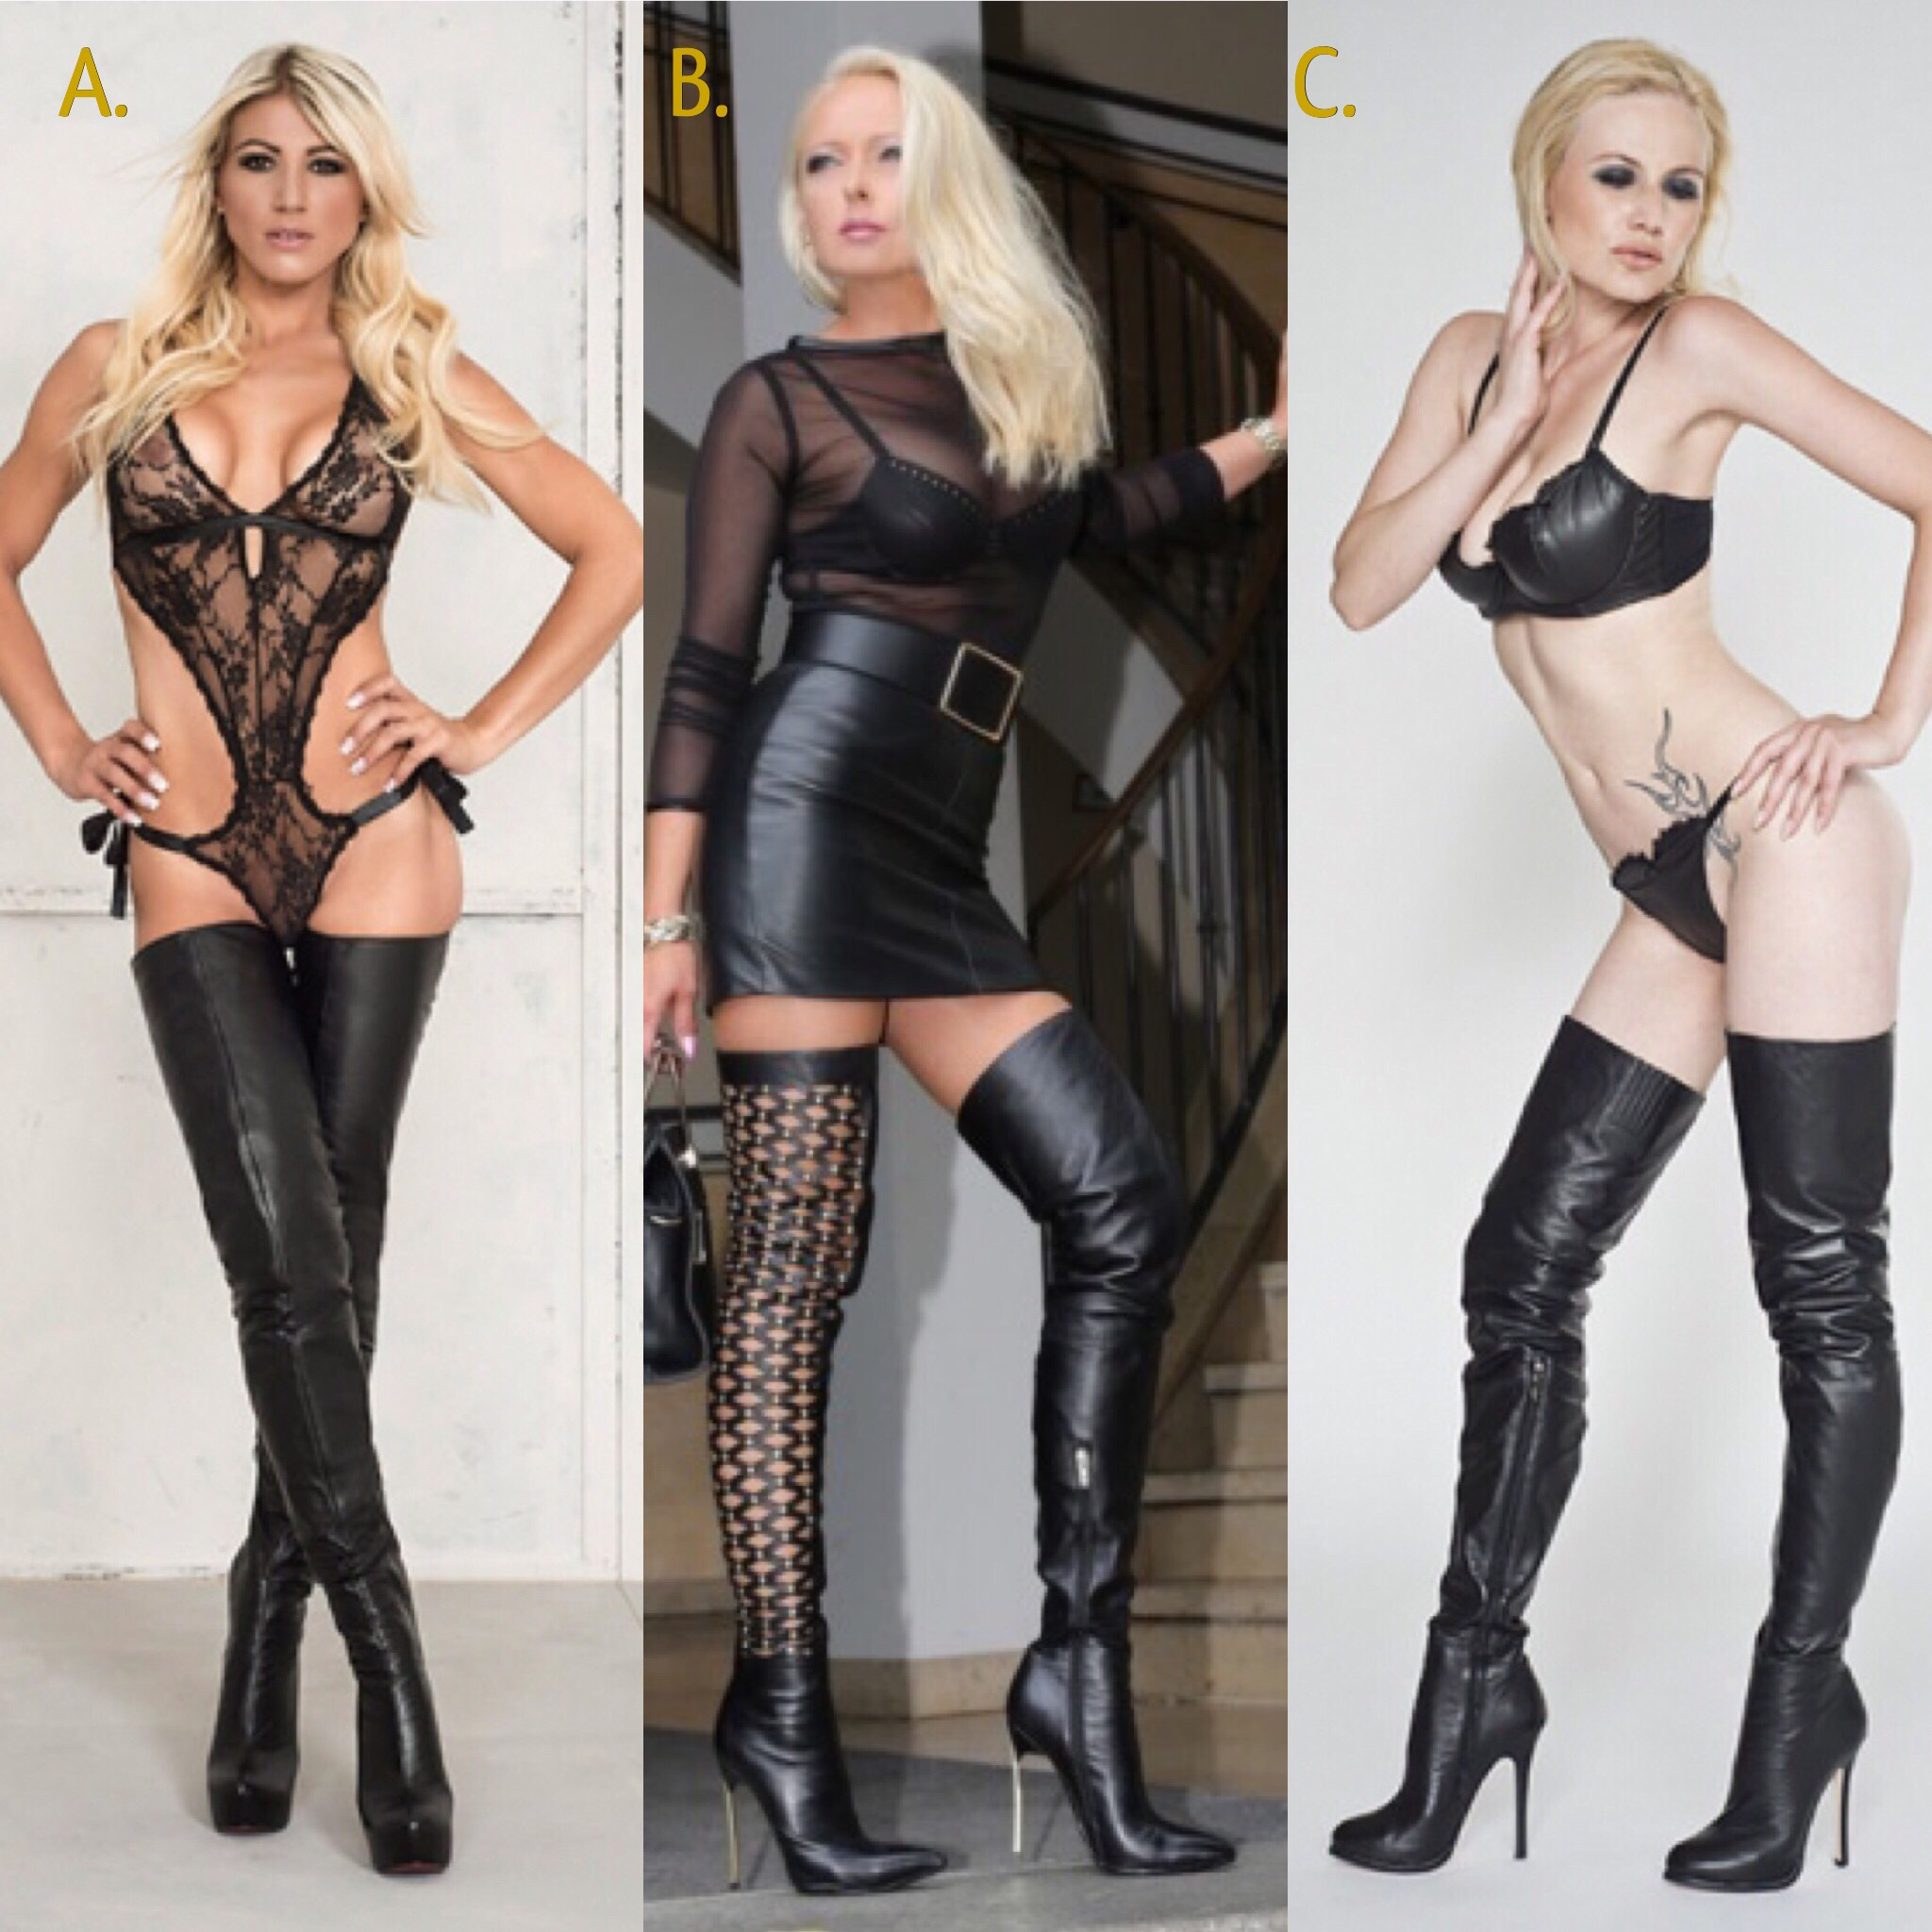 56125e790db2 Arollo Thigh High Boots online store » Blog Archiv WHO is your ...